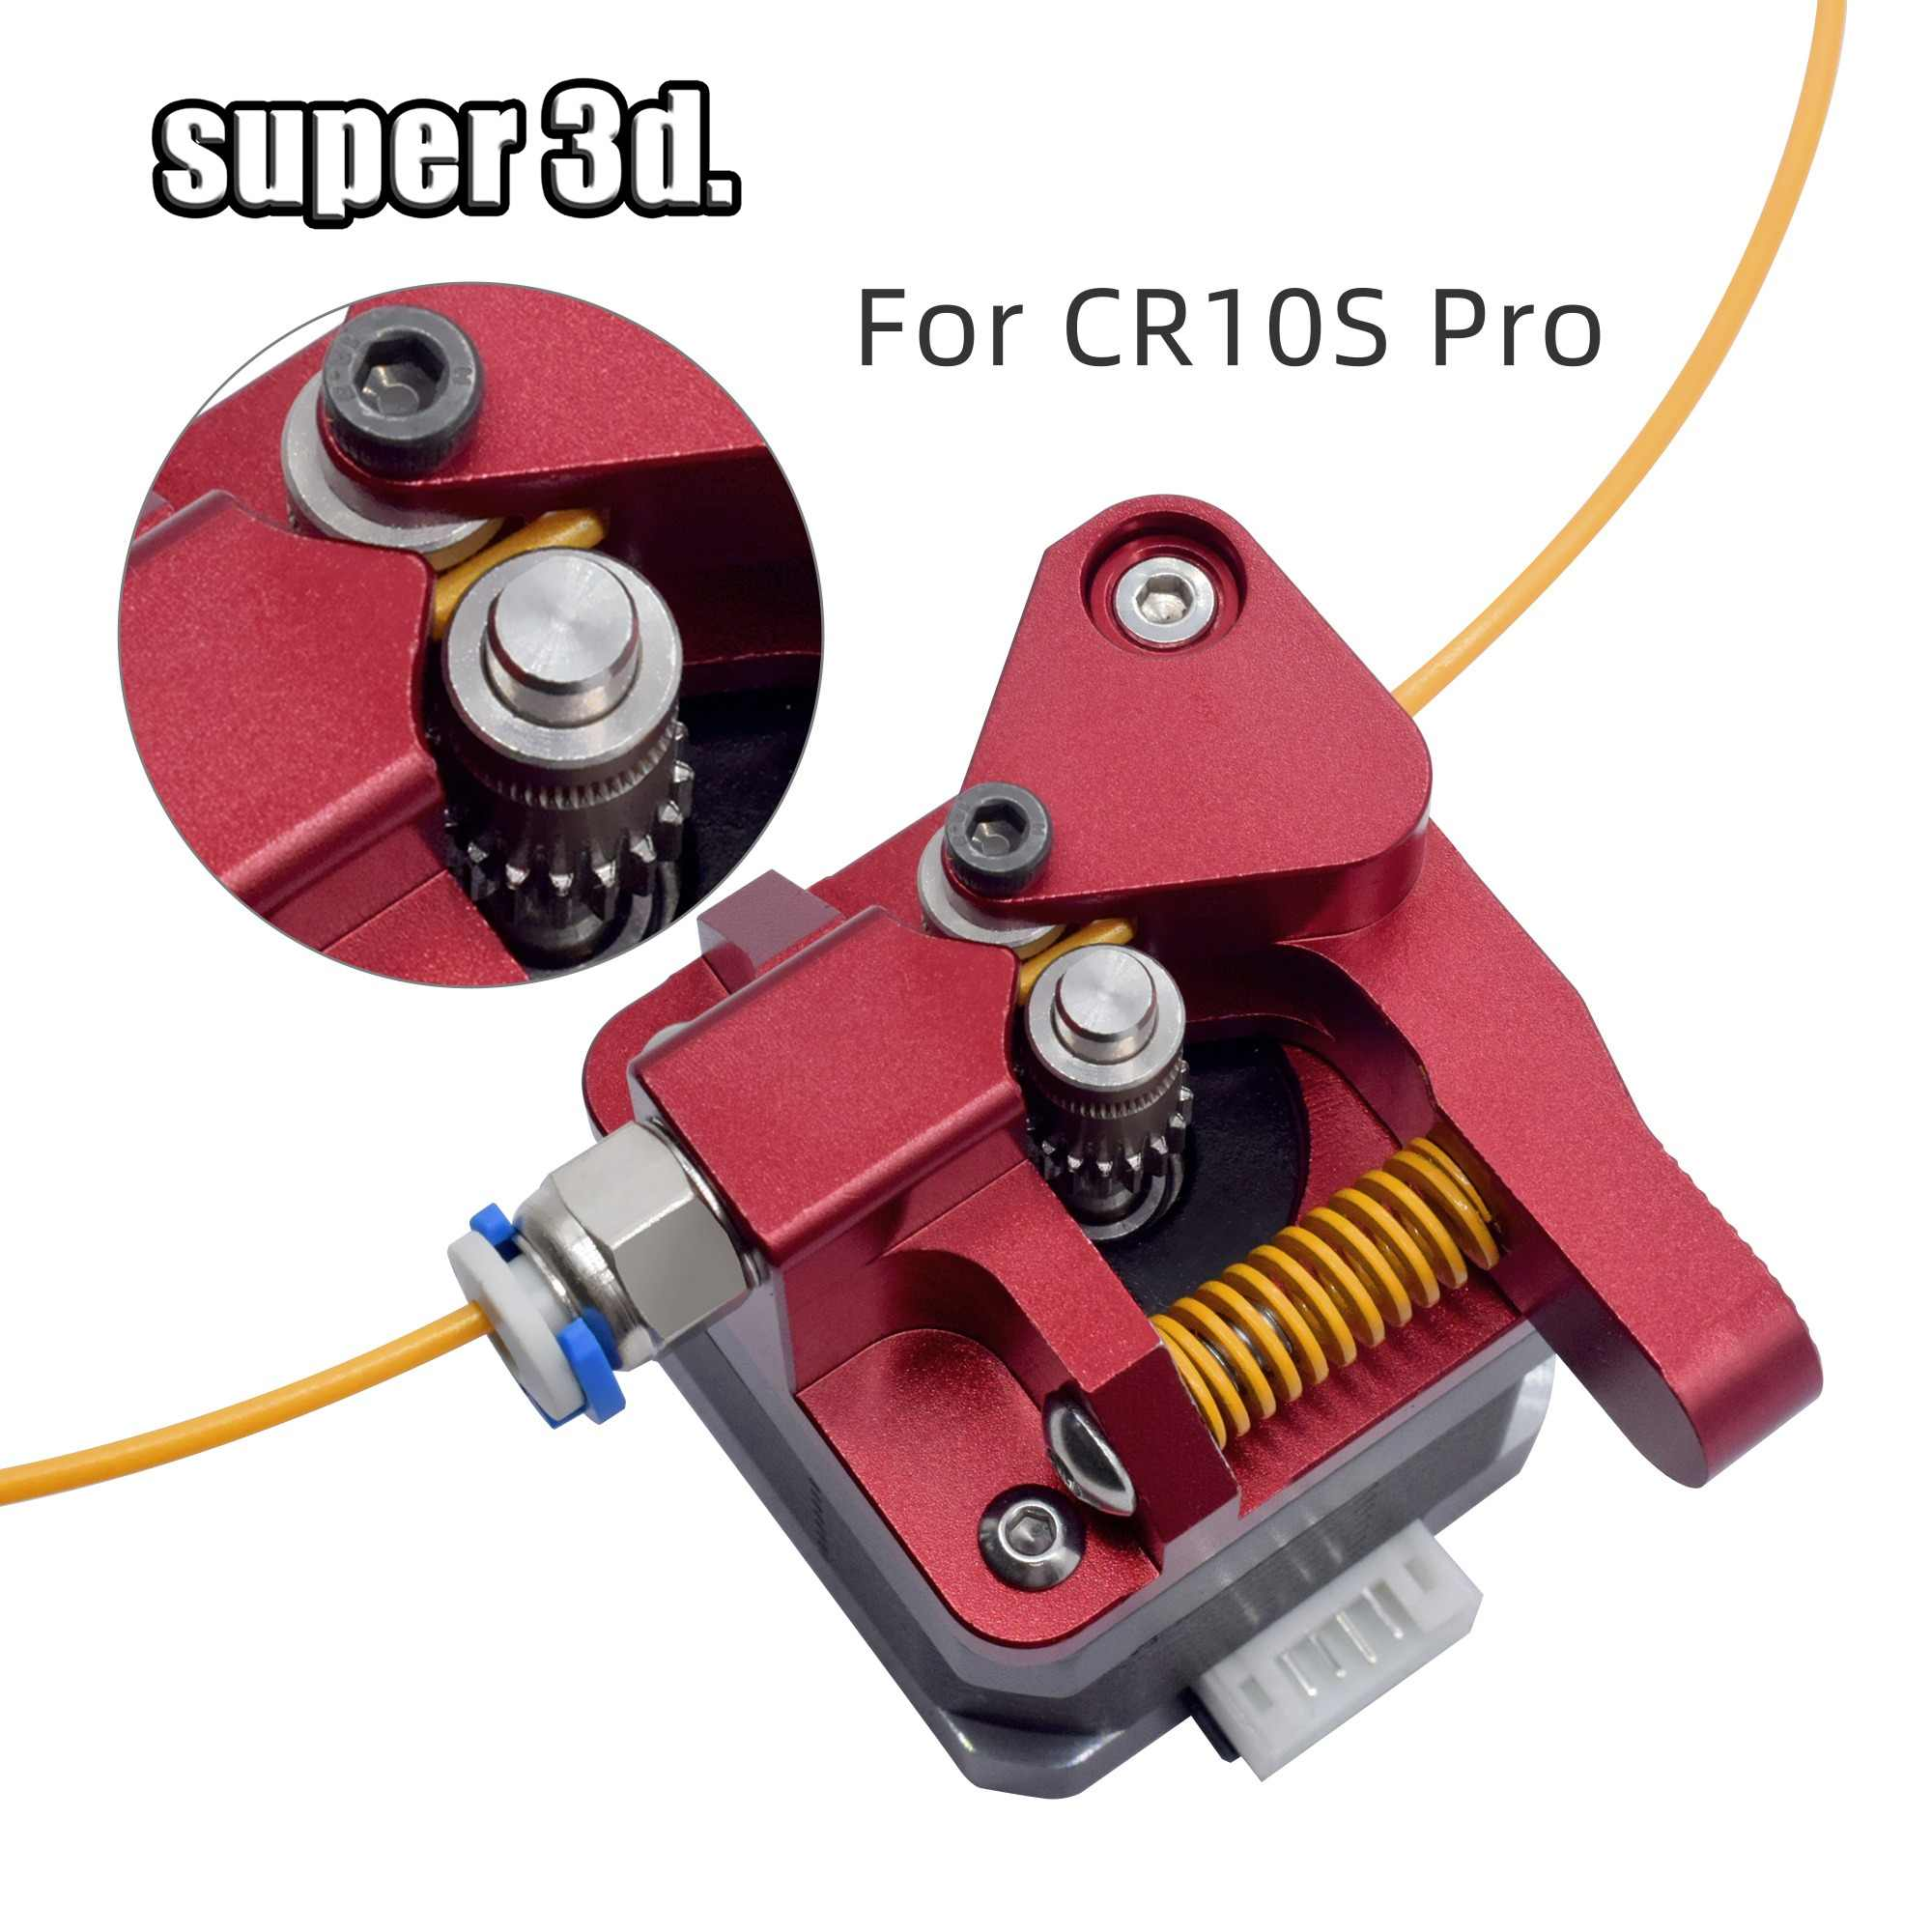 cr10 Aluminum Upgrade Dual Gear mk8 Extruder Kit for CR10S PRO RepRap Prusa i3 1.75mm 3d parts Drive Feed double pulley Extruder